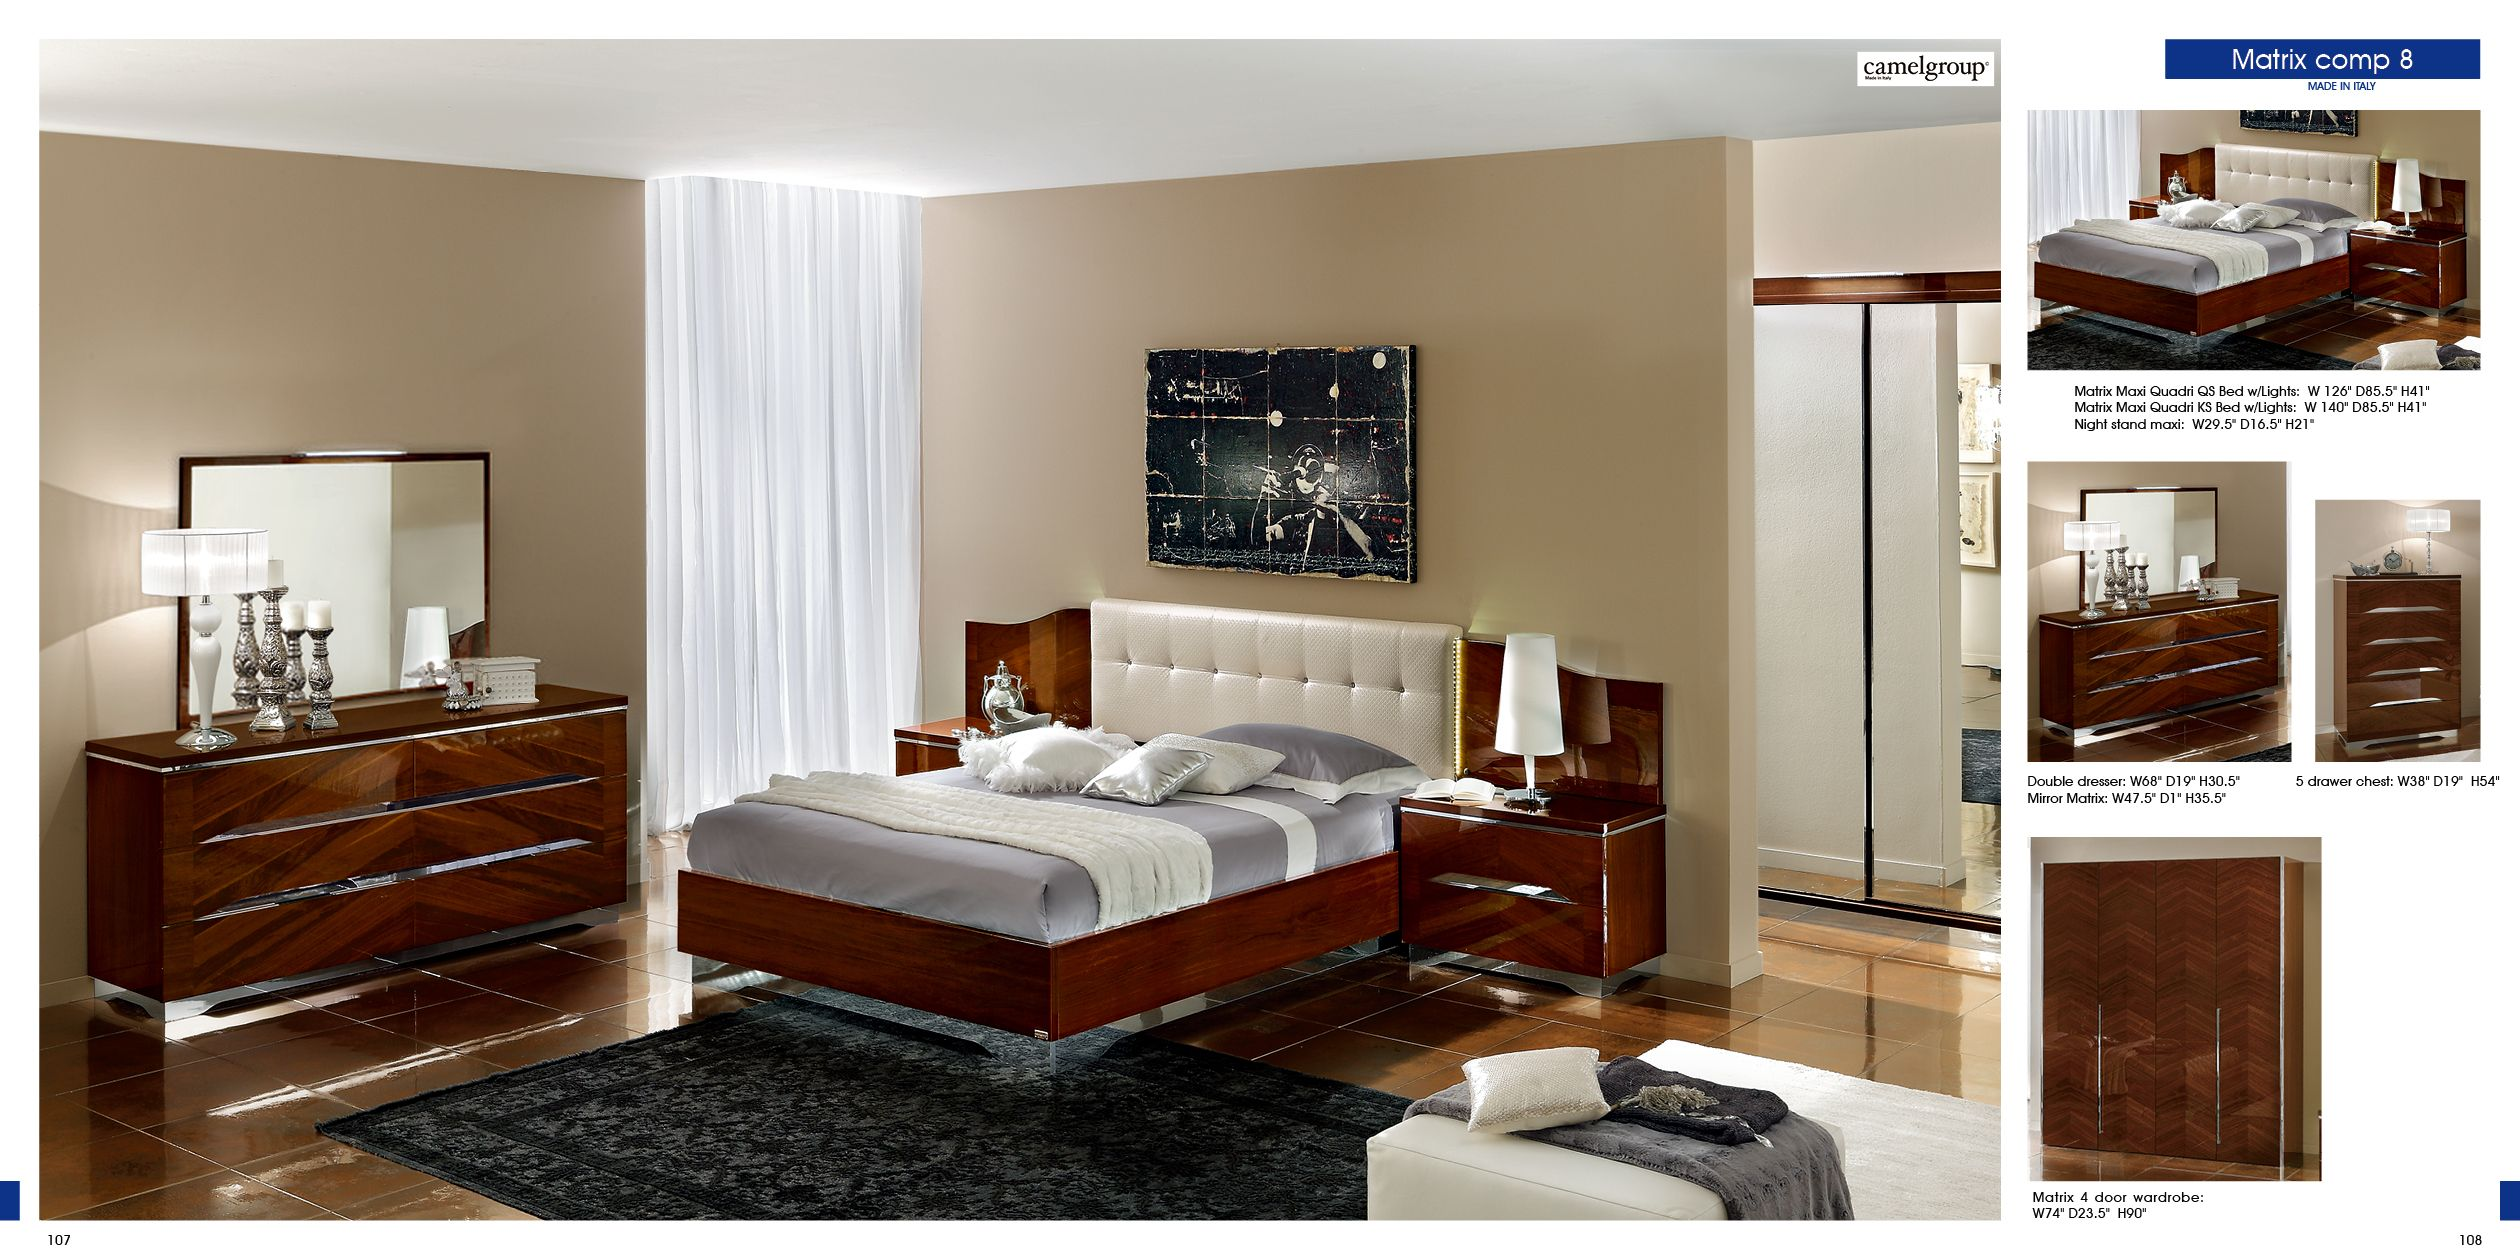 Latest Furniture Design For Bedroom Fair Matrix Composition 8 Wwhite Headboard Camelgroup Italy This Review